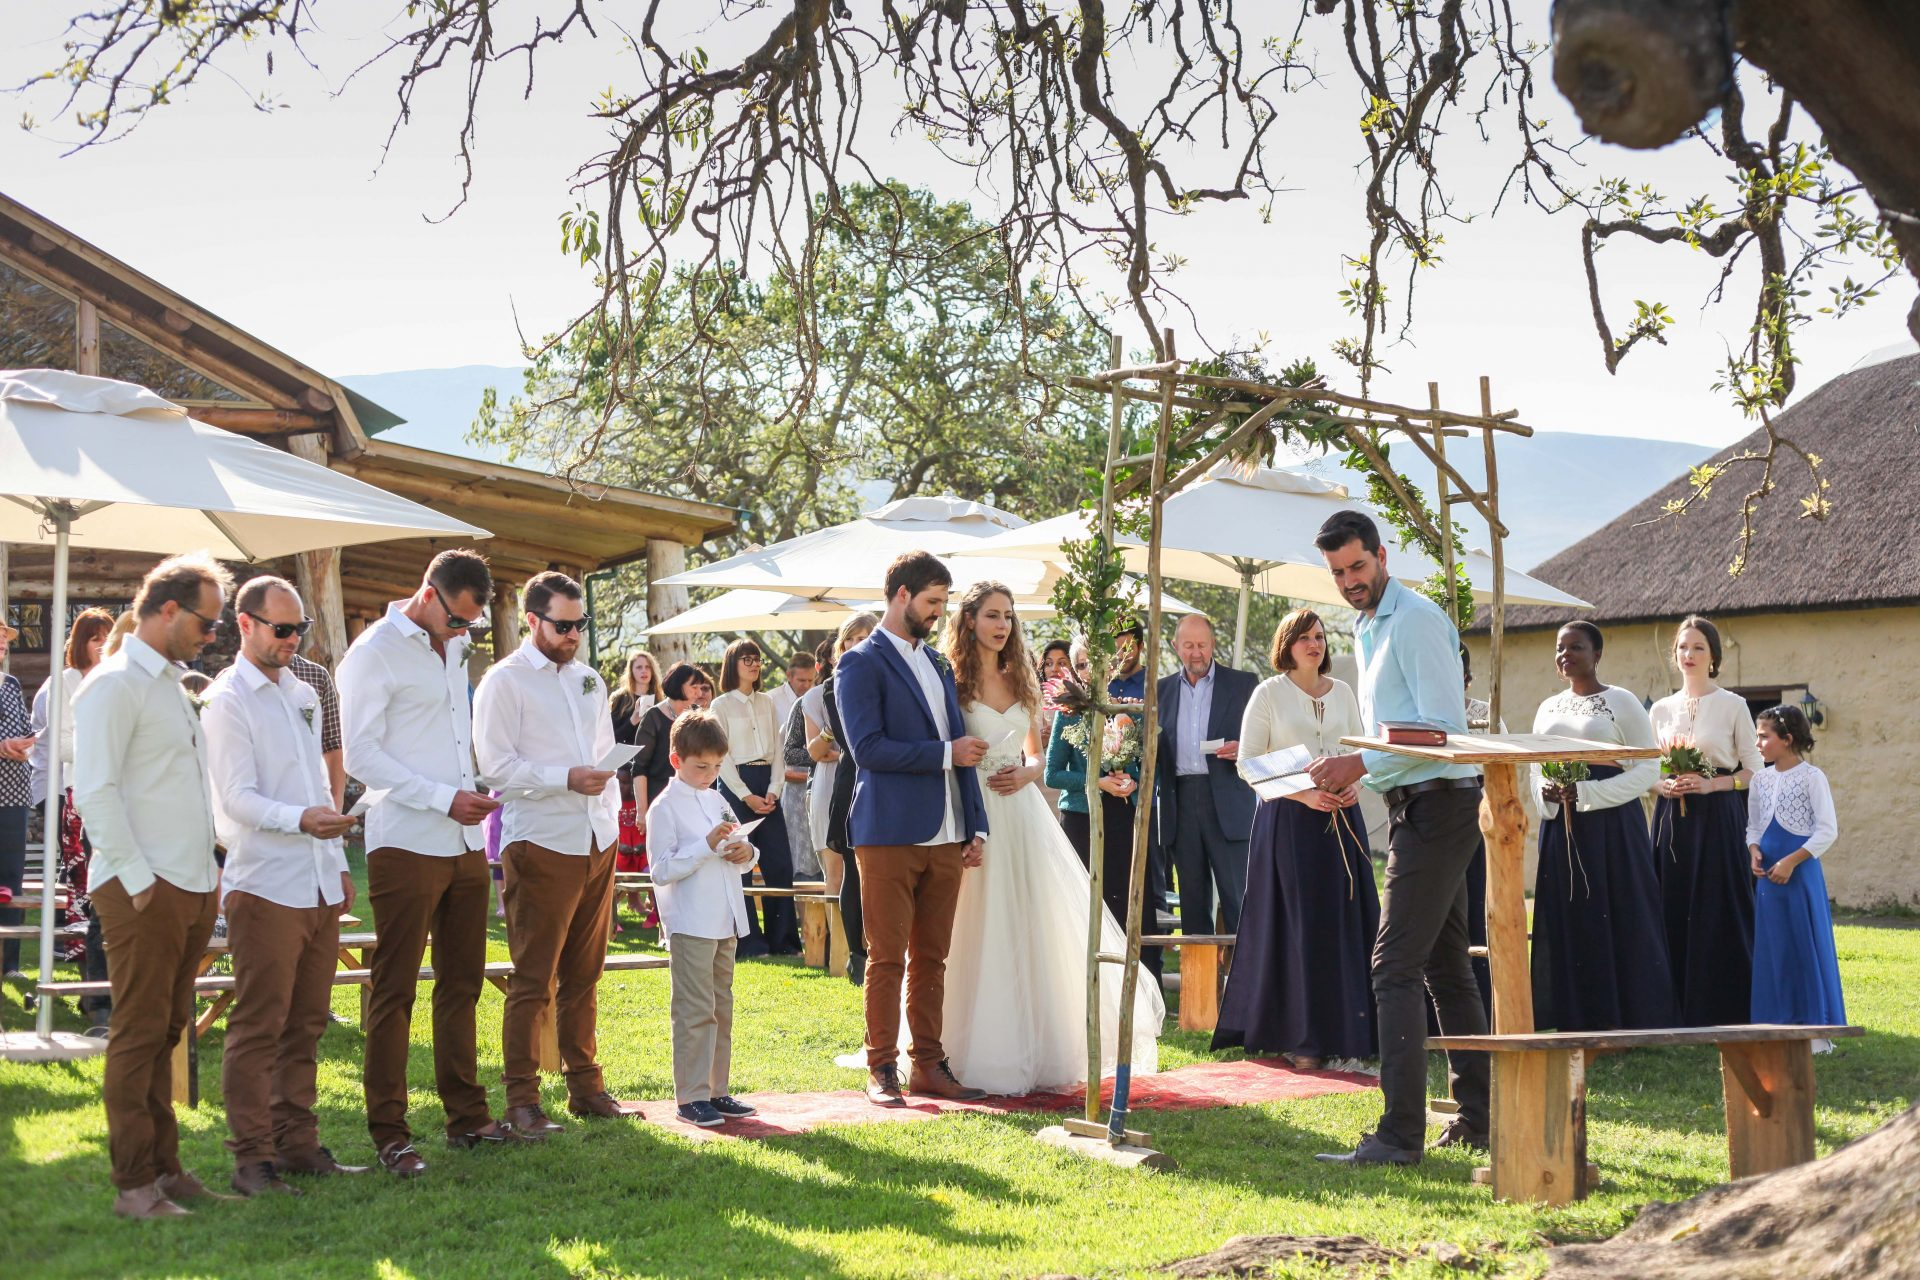 lorien-david_elana-van-zyl-overberg-swellendam-photographer-de-uijlenes-wedding-8009